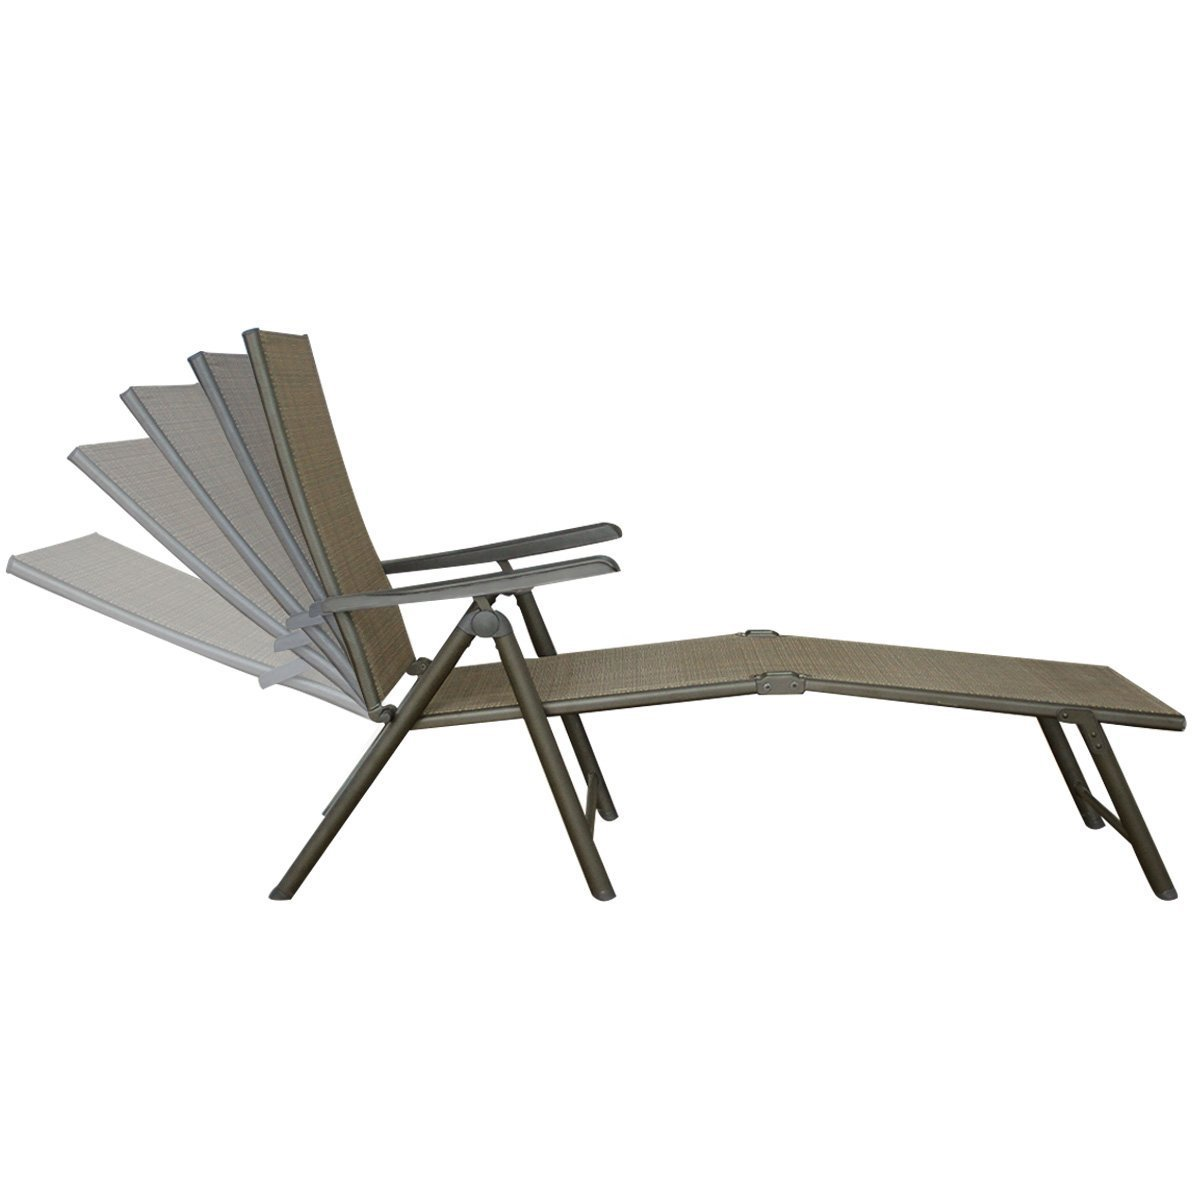 Pack of 2 Outdoor Recliner Lounge Chair Adjustable Chaise Patio Sun Daybed Tan